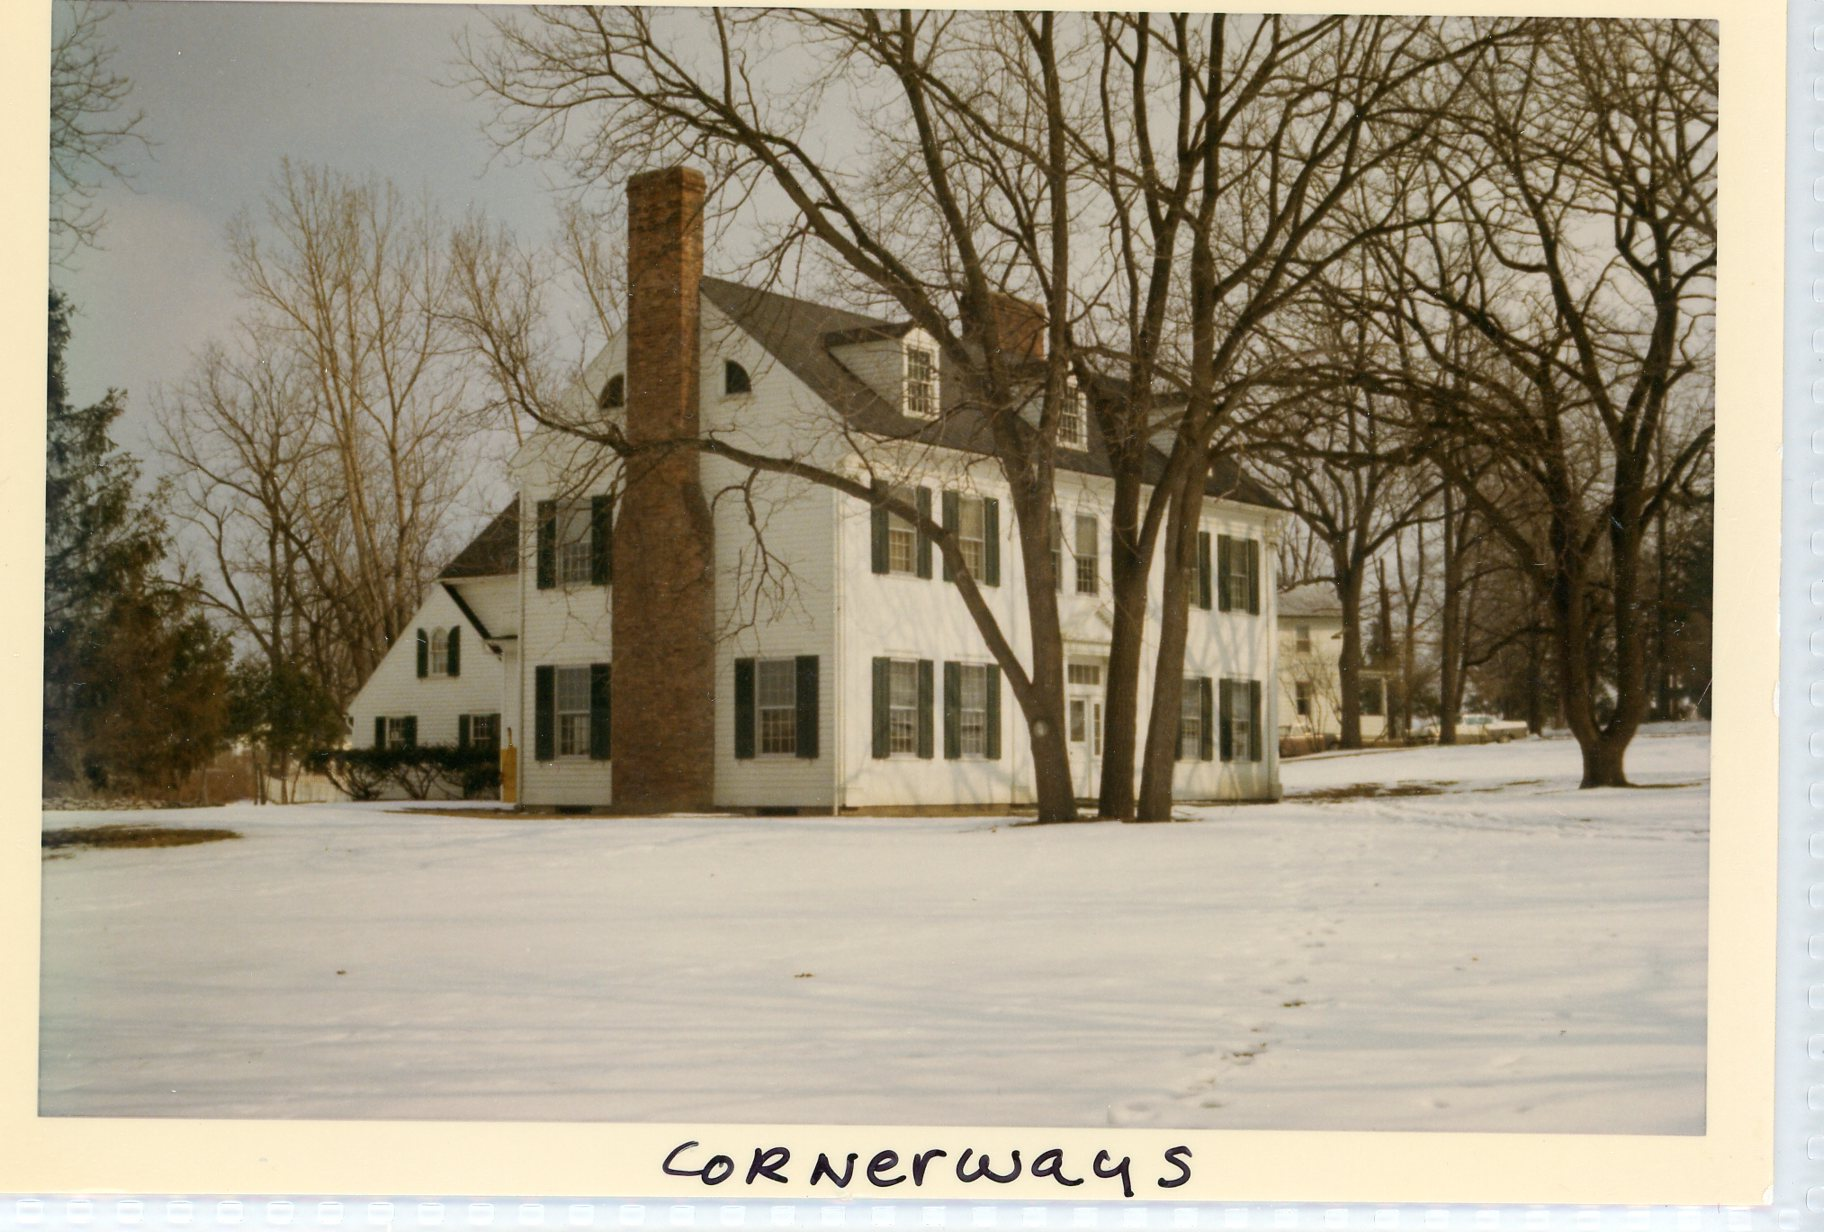 Image of white clapboard home, called Cornerways, with green shutters